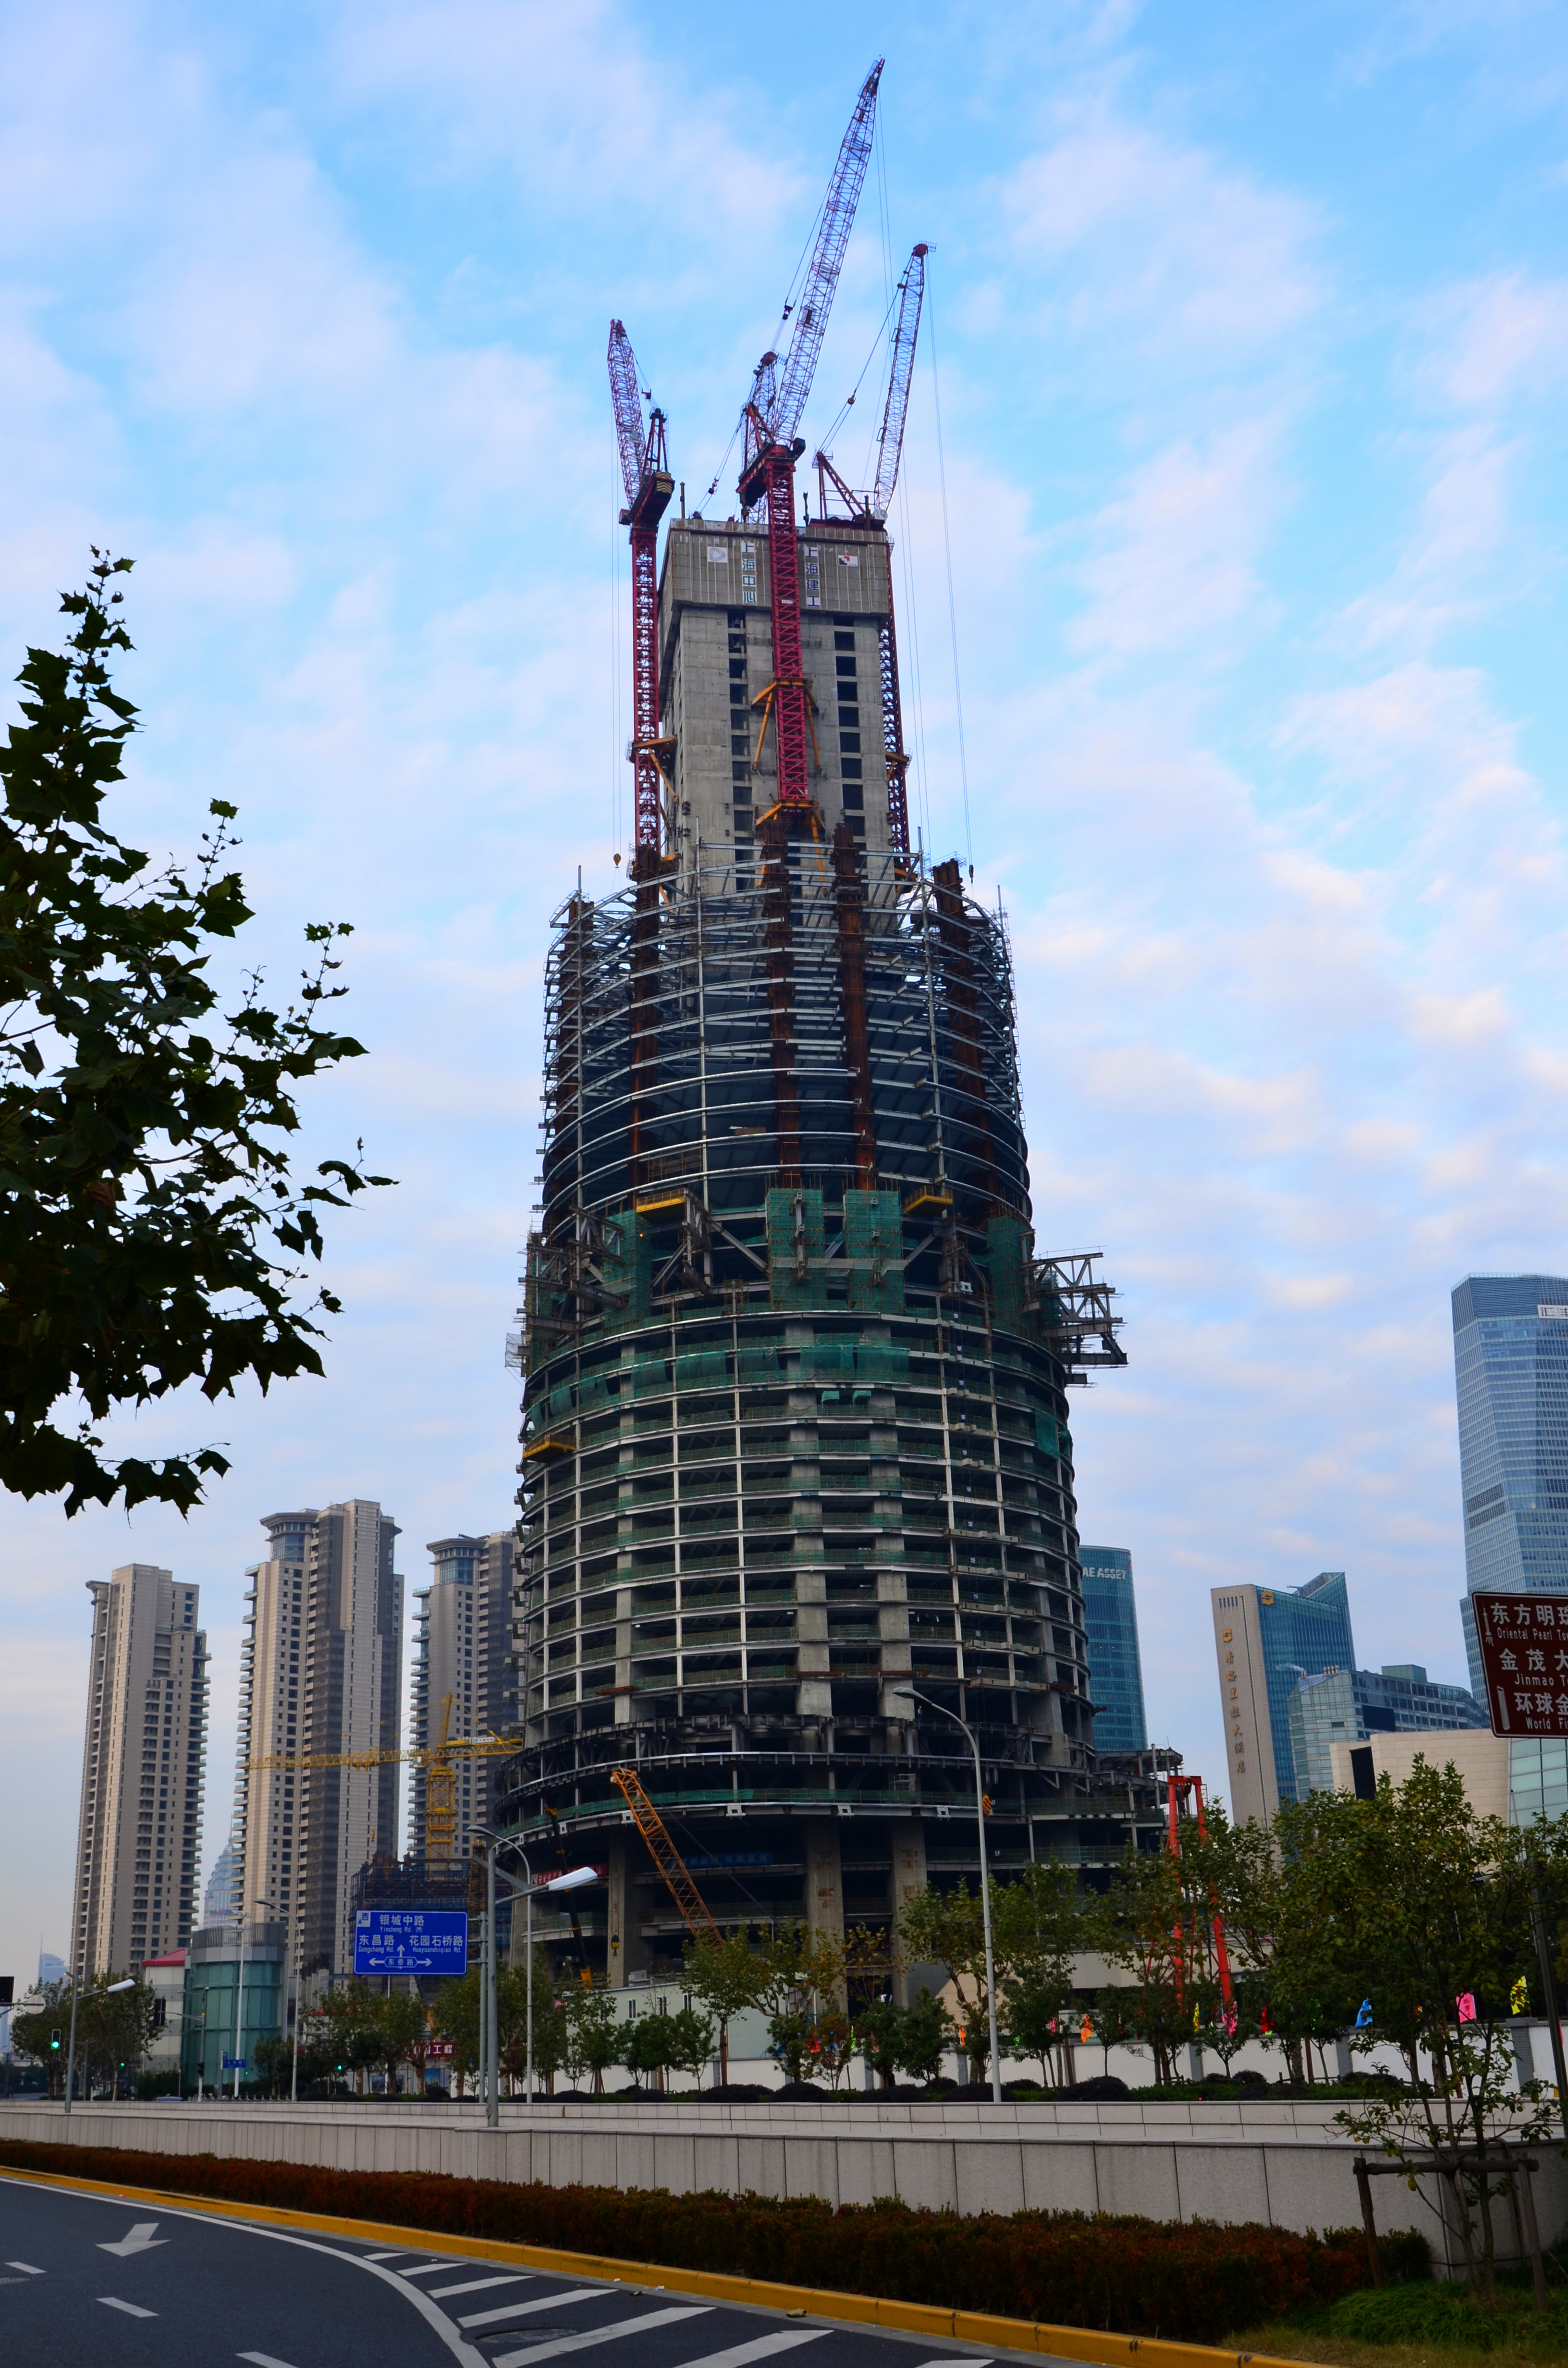 Construction, newest Images of Shanghai Tower building 上海中心大厦